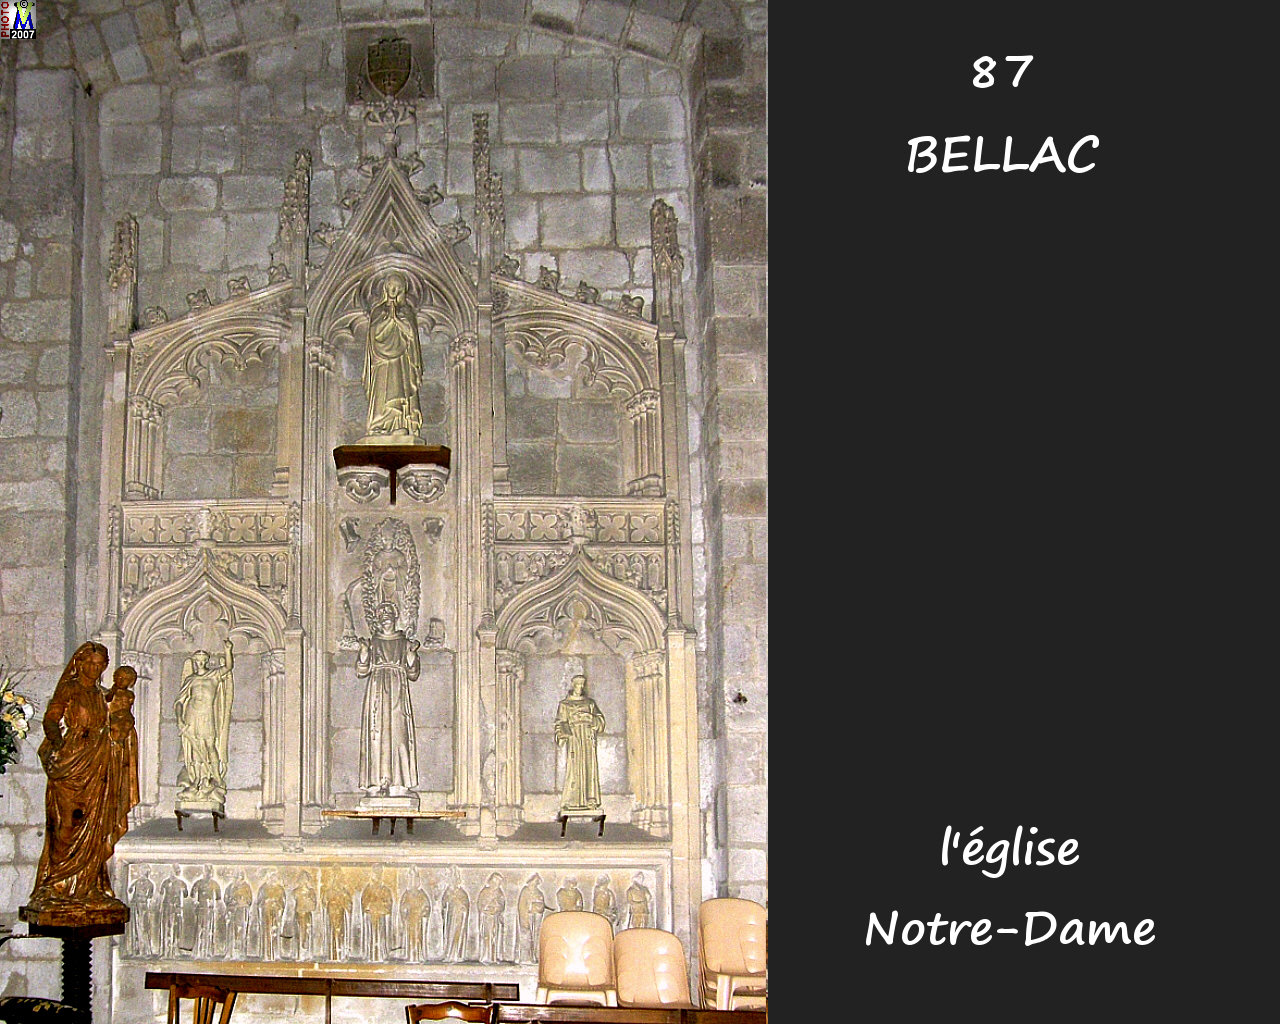 87BELLAC_eglise_214.jpg